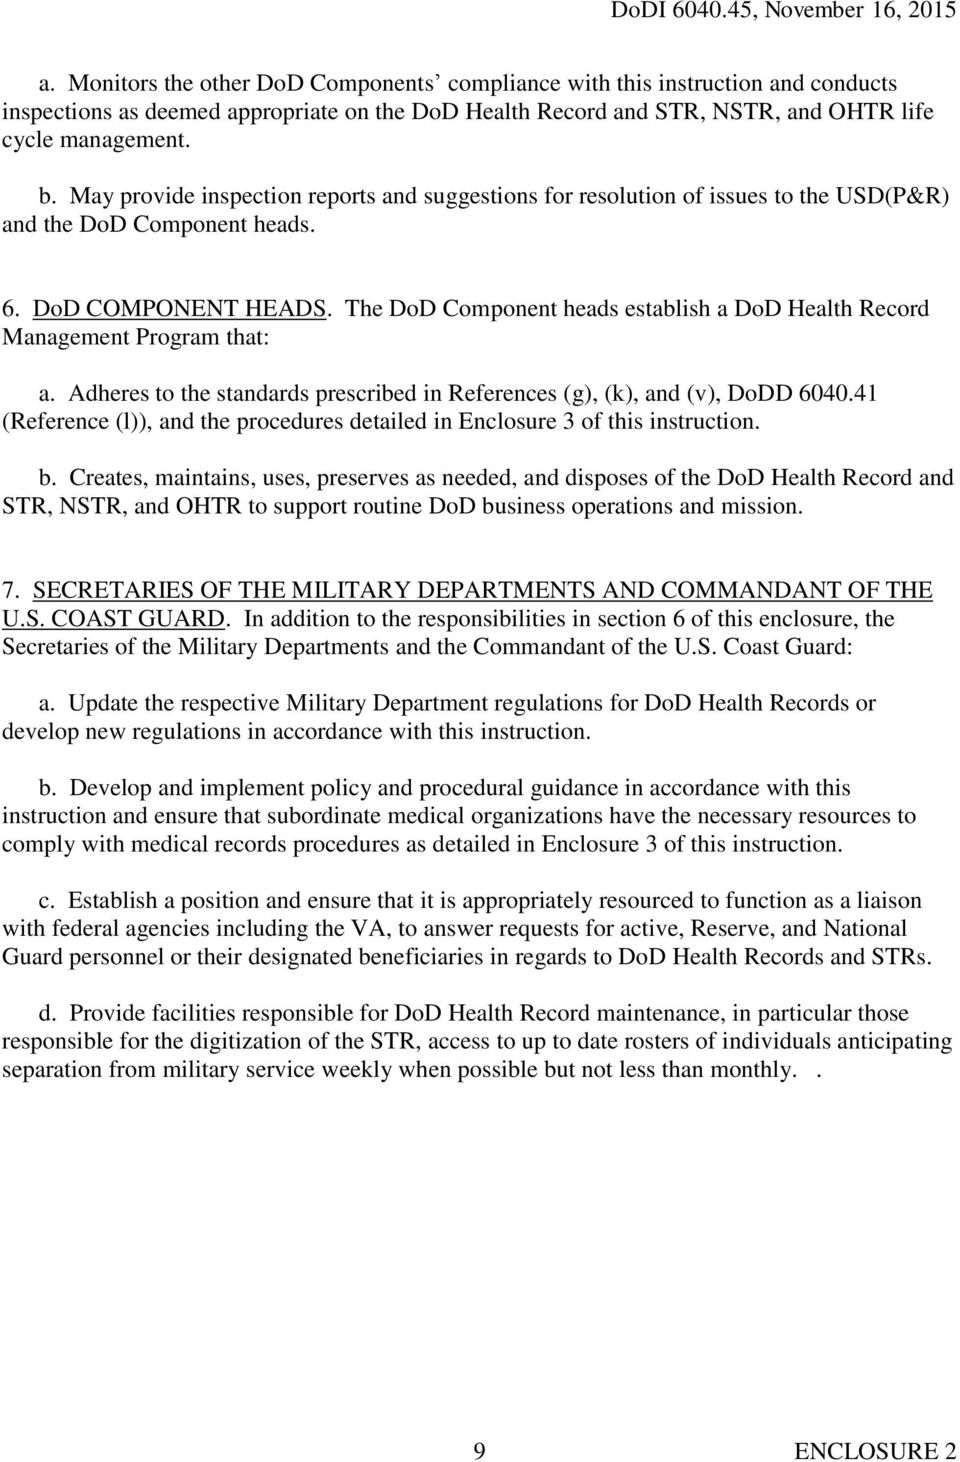 The DoD Component heads establish a DoD Health Record Management Program that: a. Adheres to the standards prescribed in References (g), (k), and (v), DoDD 6040.